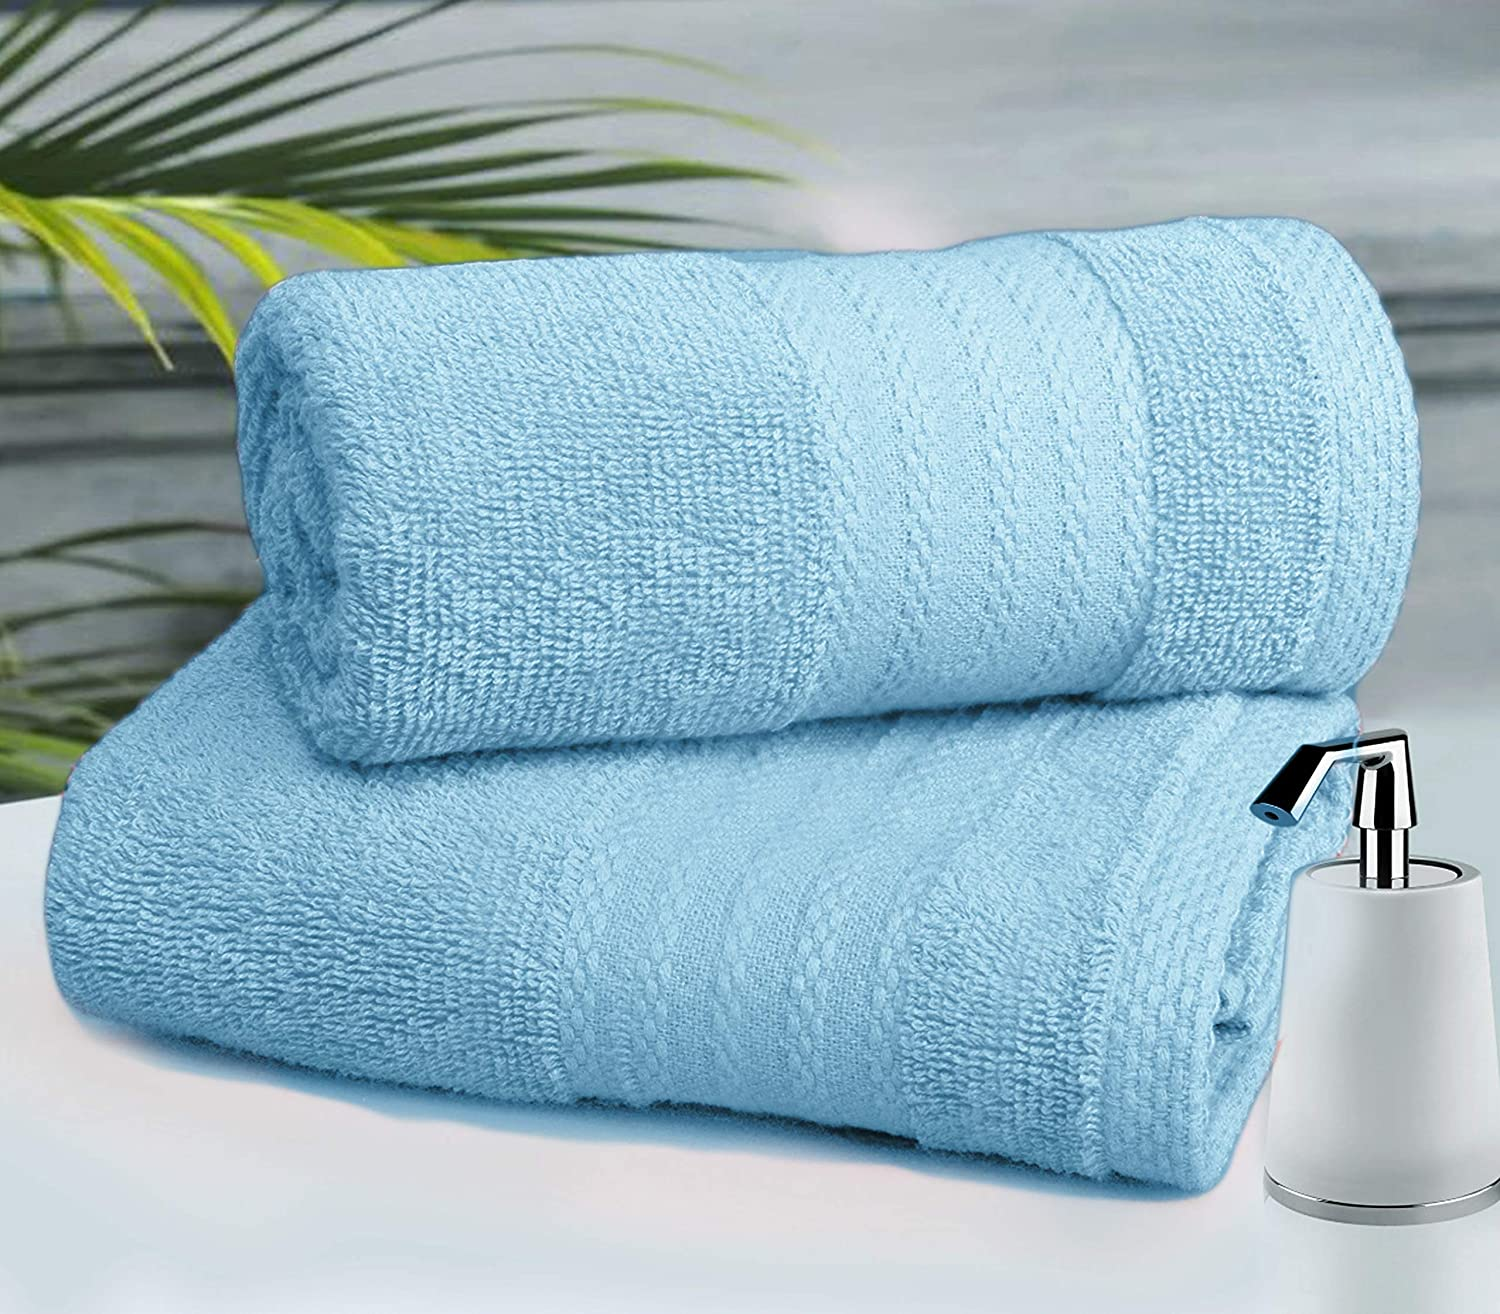 Glamburg Premium Cotton 4 Pack Bath Towel Set - 100% Pure Cotton - 4 Bath Towels 27x54 - Ideal for Everyday use - Ultra Soft & Highly Absorbent - Black: Kitchen & Dining